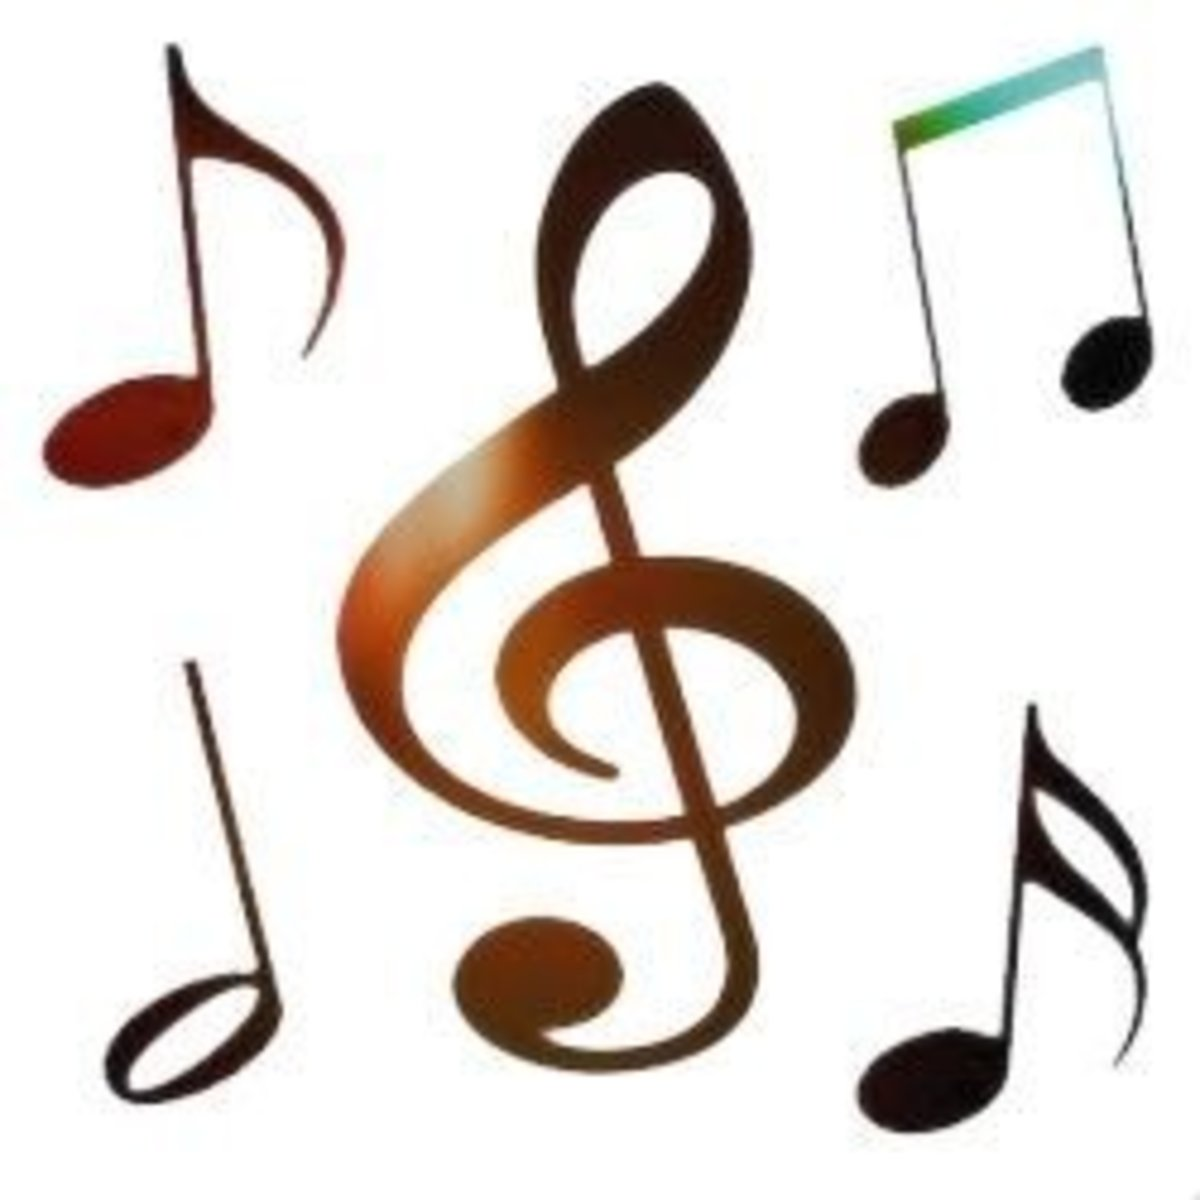 Free Clip Art -  Music Notes & Symbols